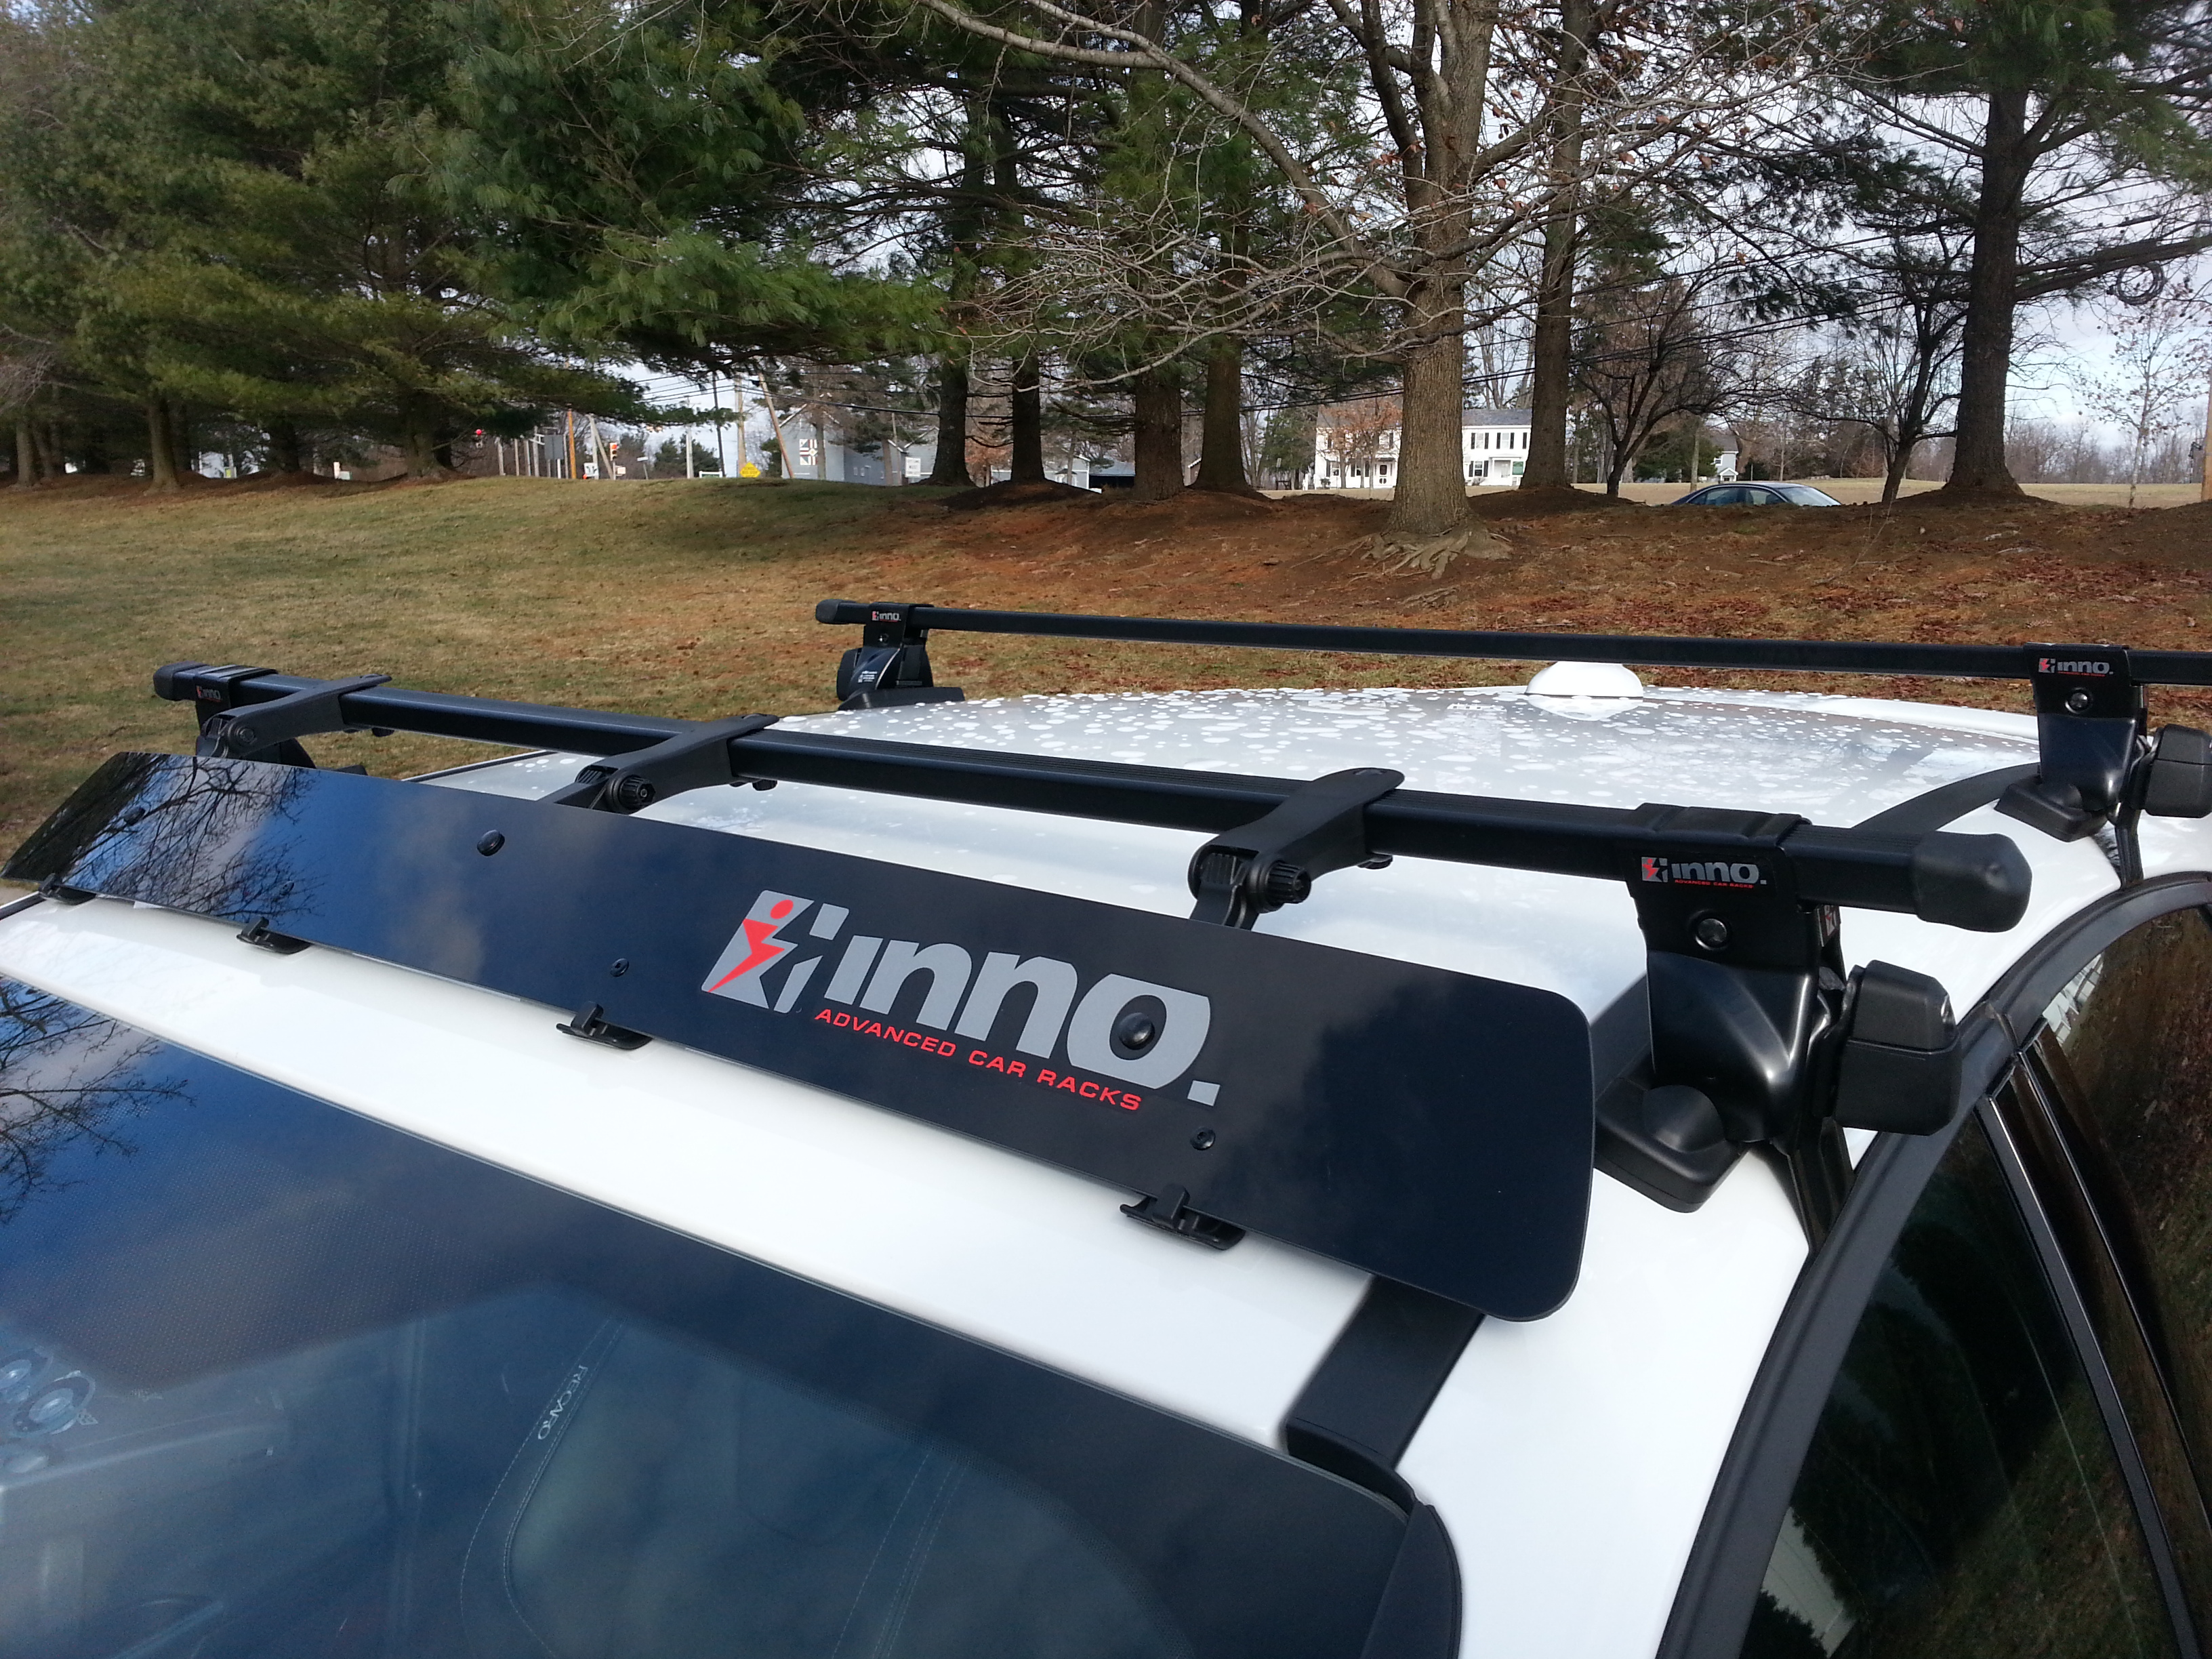 inno in su roof rack rh focusst org Inno Rack Fairing Jeep Grand Cherokee Roof Rack Fairing for 2012